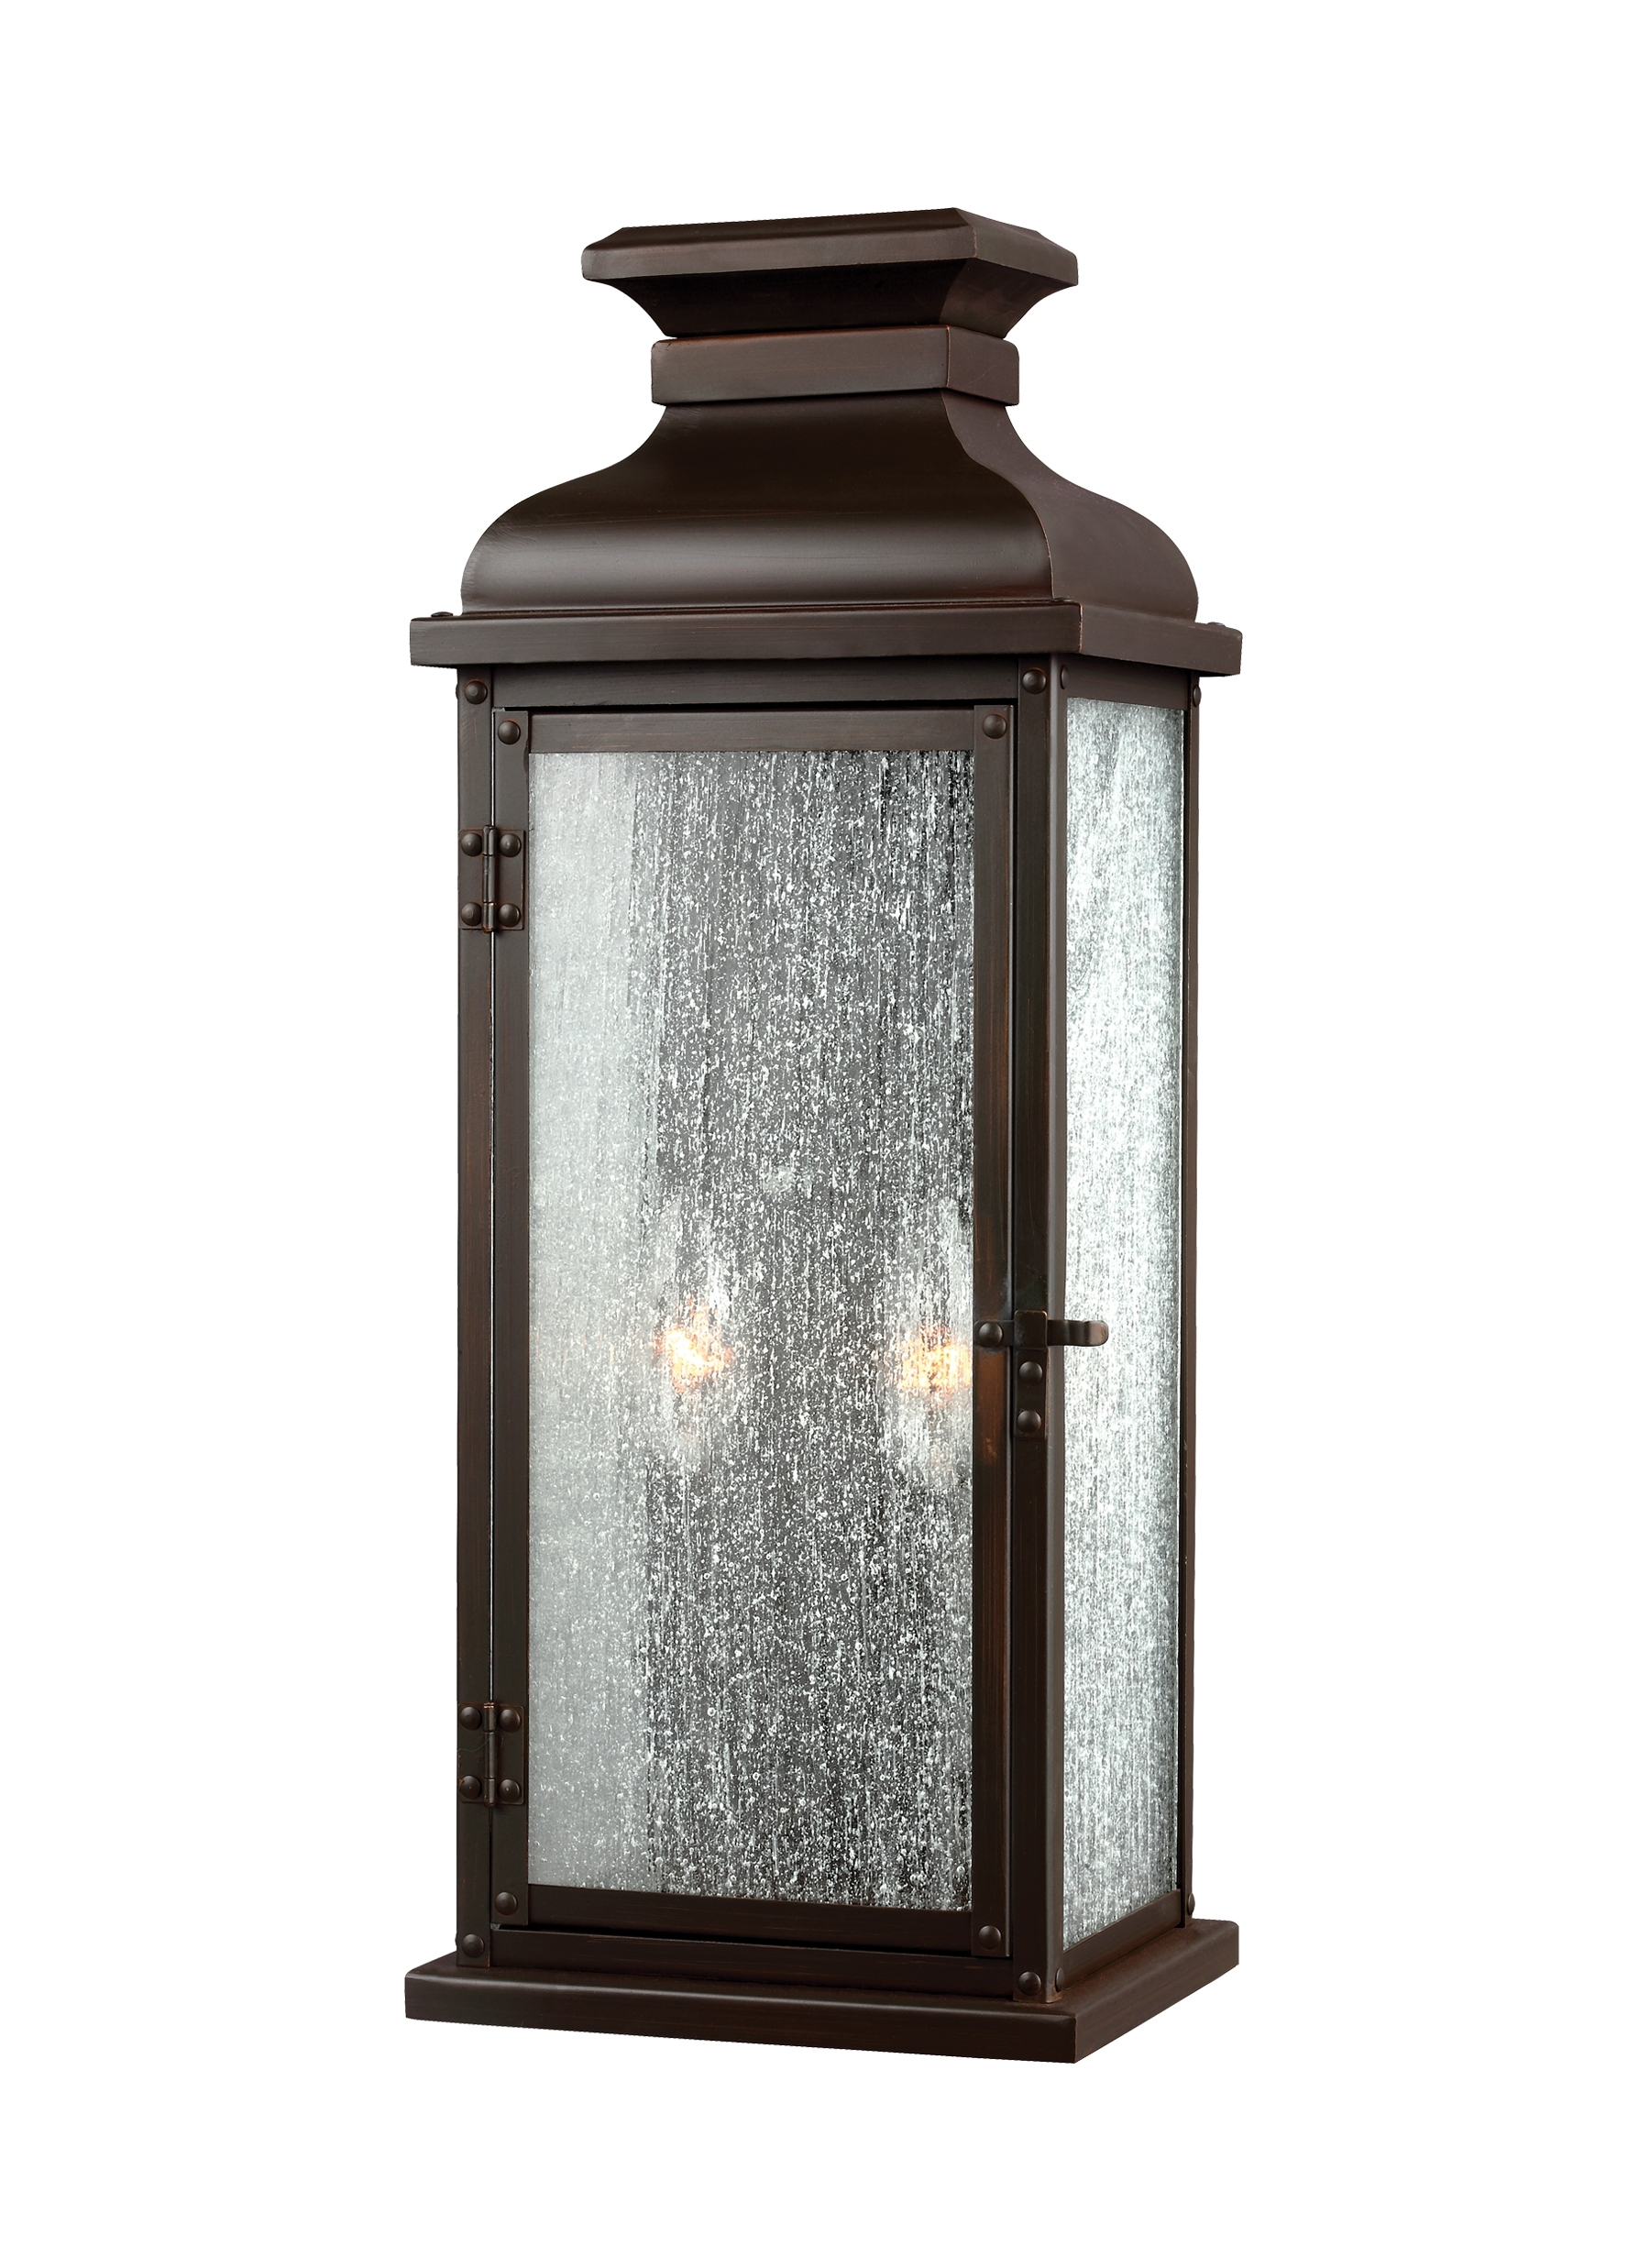 Ol11101Dac,2 – Light Outdoor Sconce,dark Aged Copper Pertaining To Favorite Italian Outdoor Lanterns (View 15 of 20)